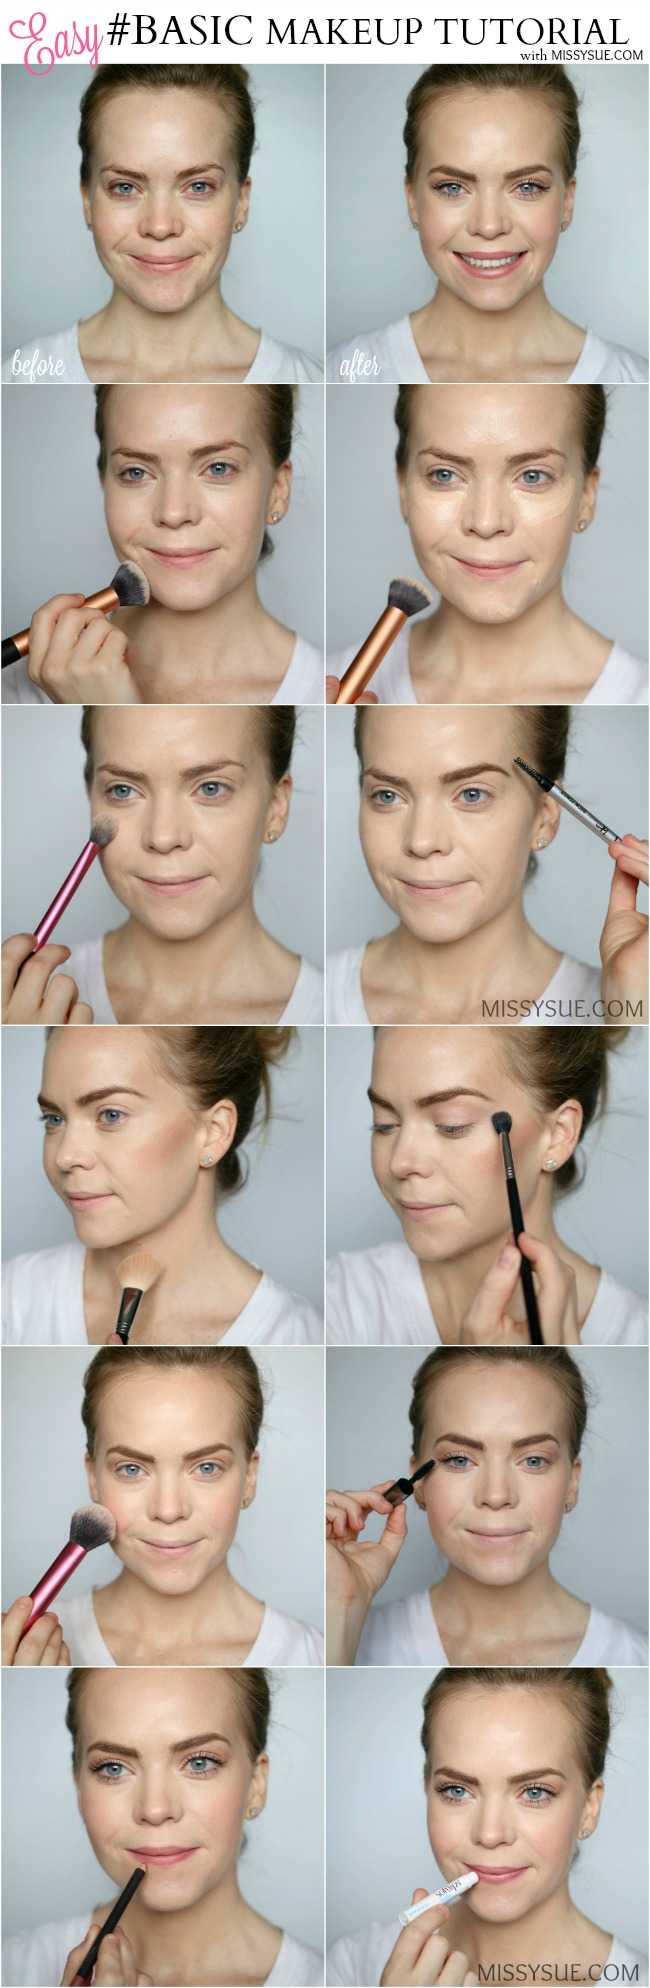 easy-basic-makeup-tutorial